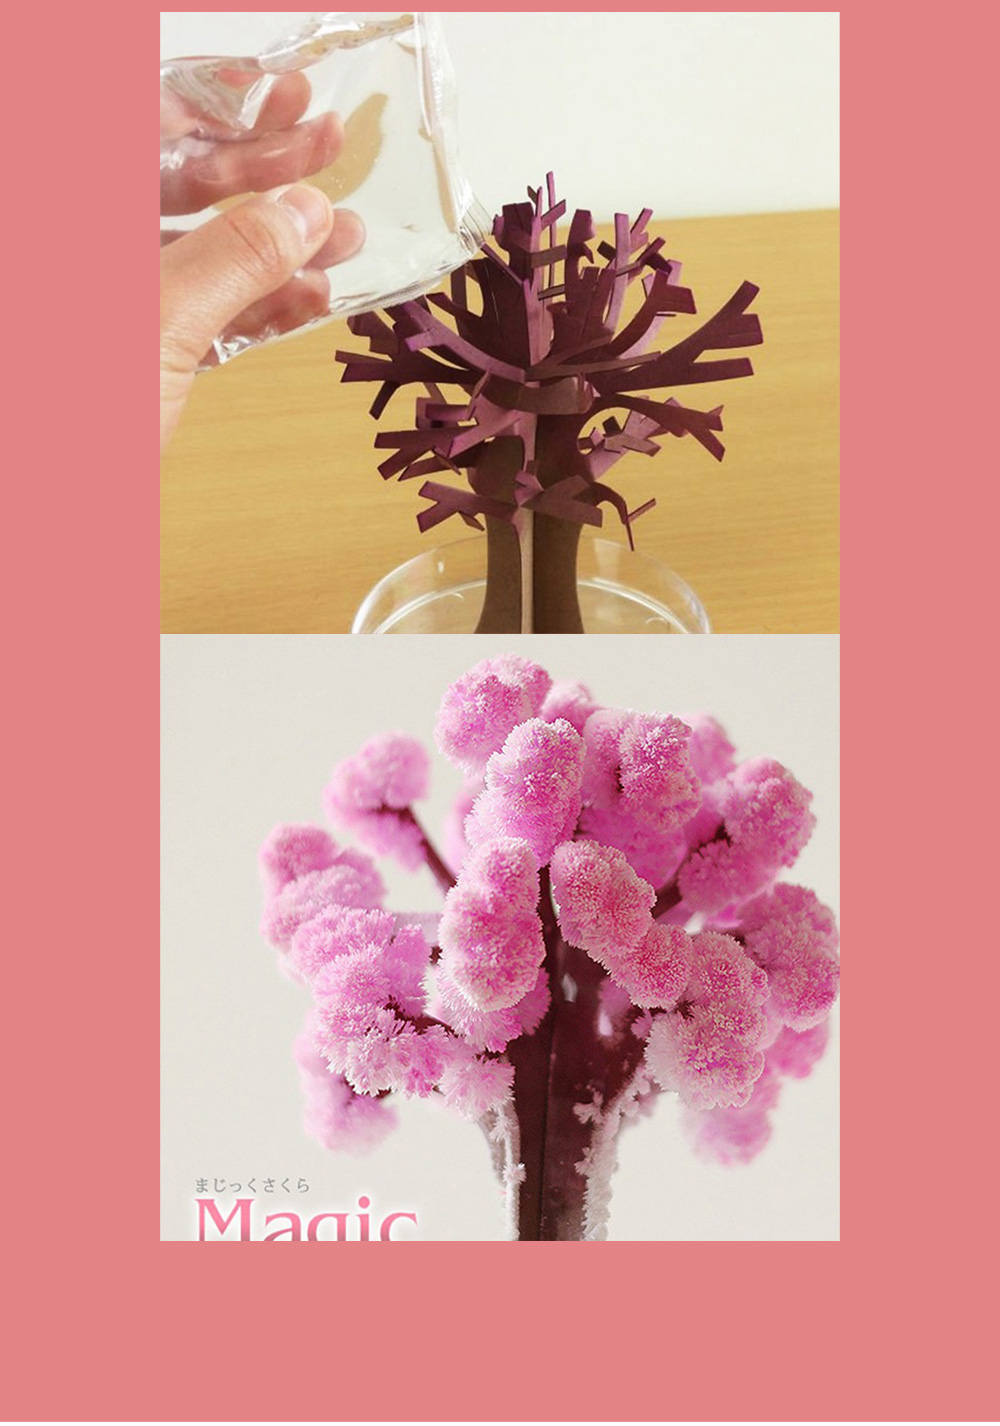 Magic Christmas Tree Paper Flower for kindergarten Children Fancy Self-made Pretty Xmas Tree Decoration Perfect Present for Kids 7